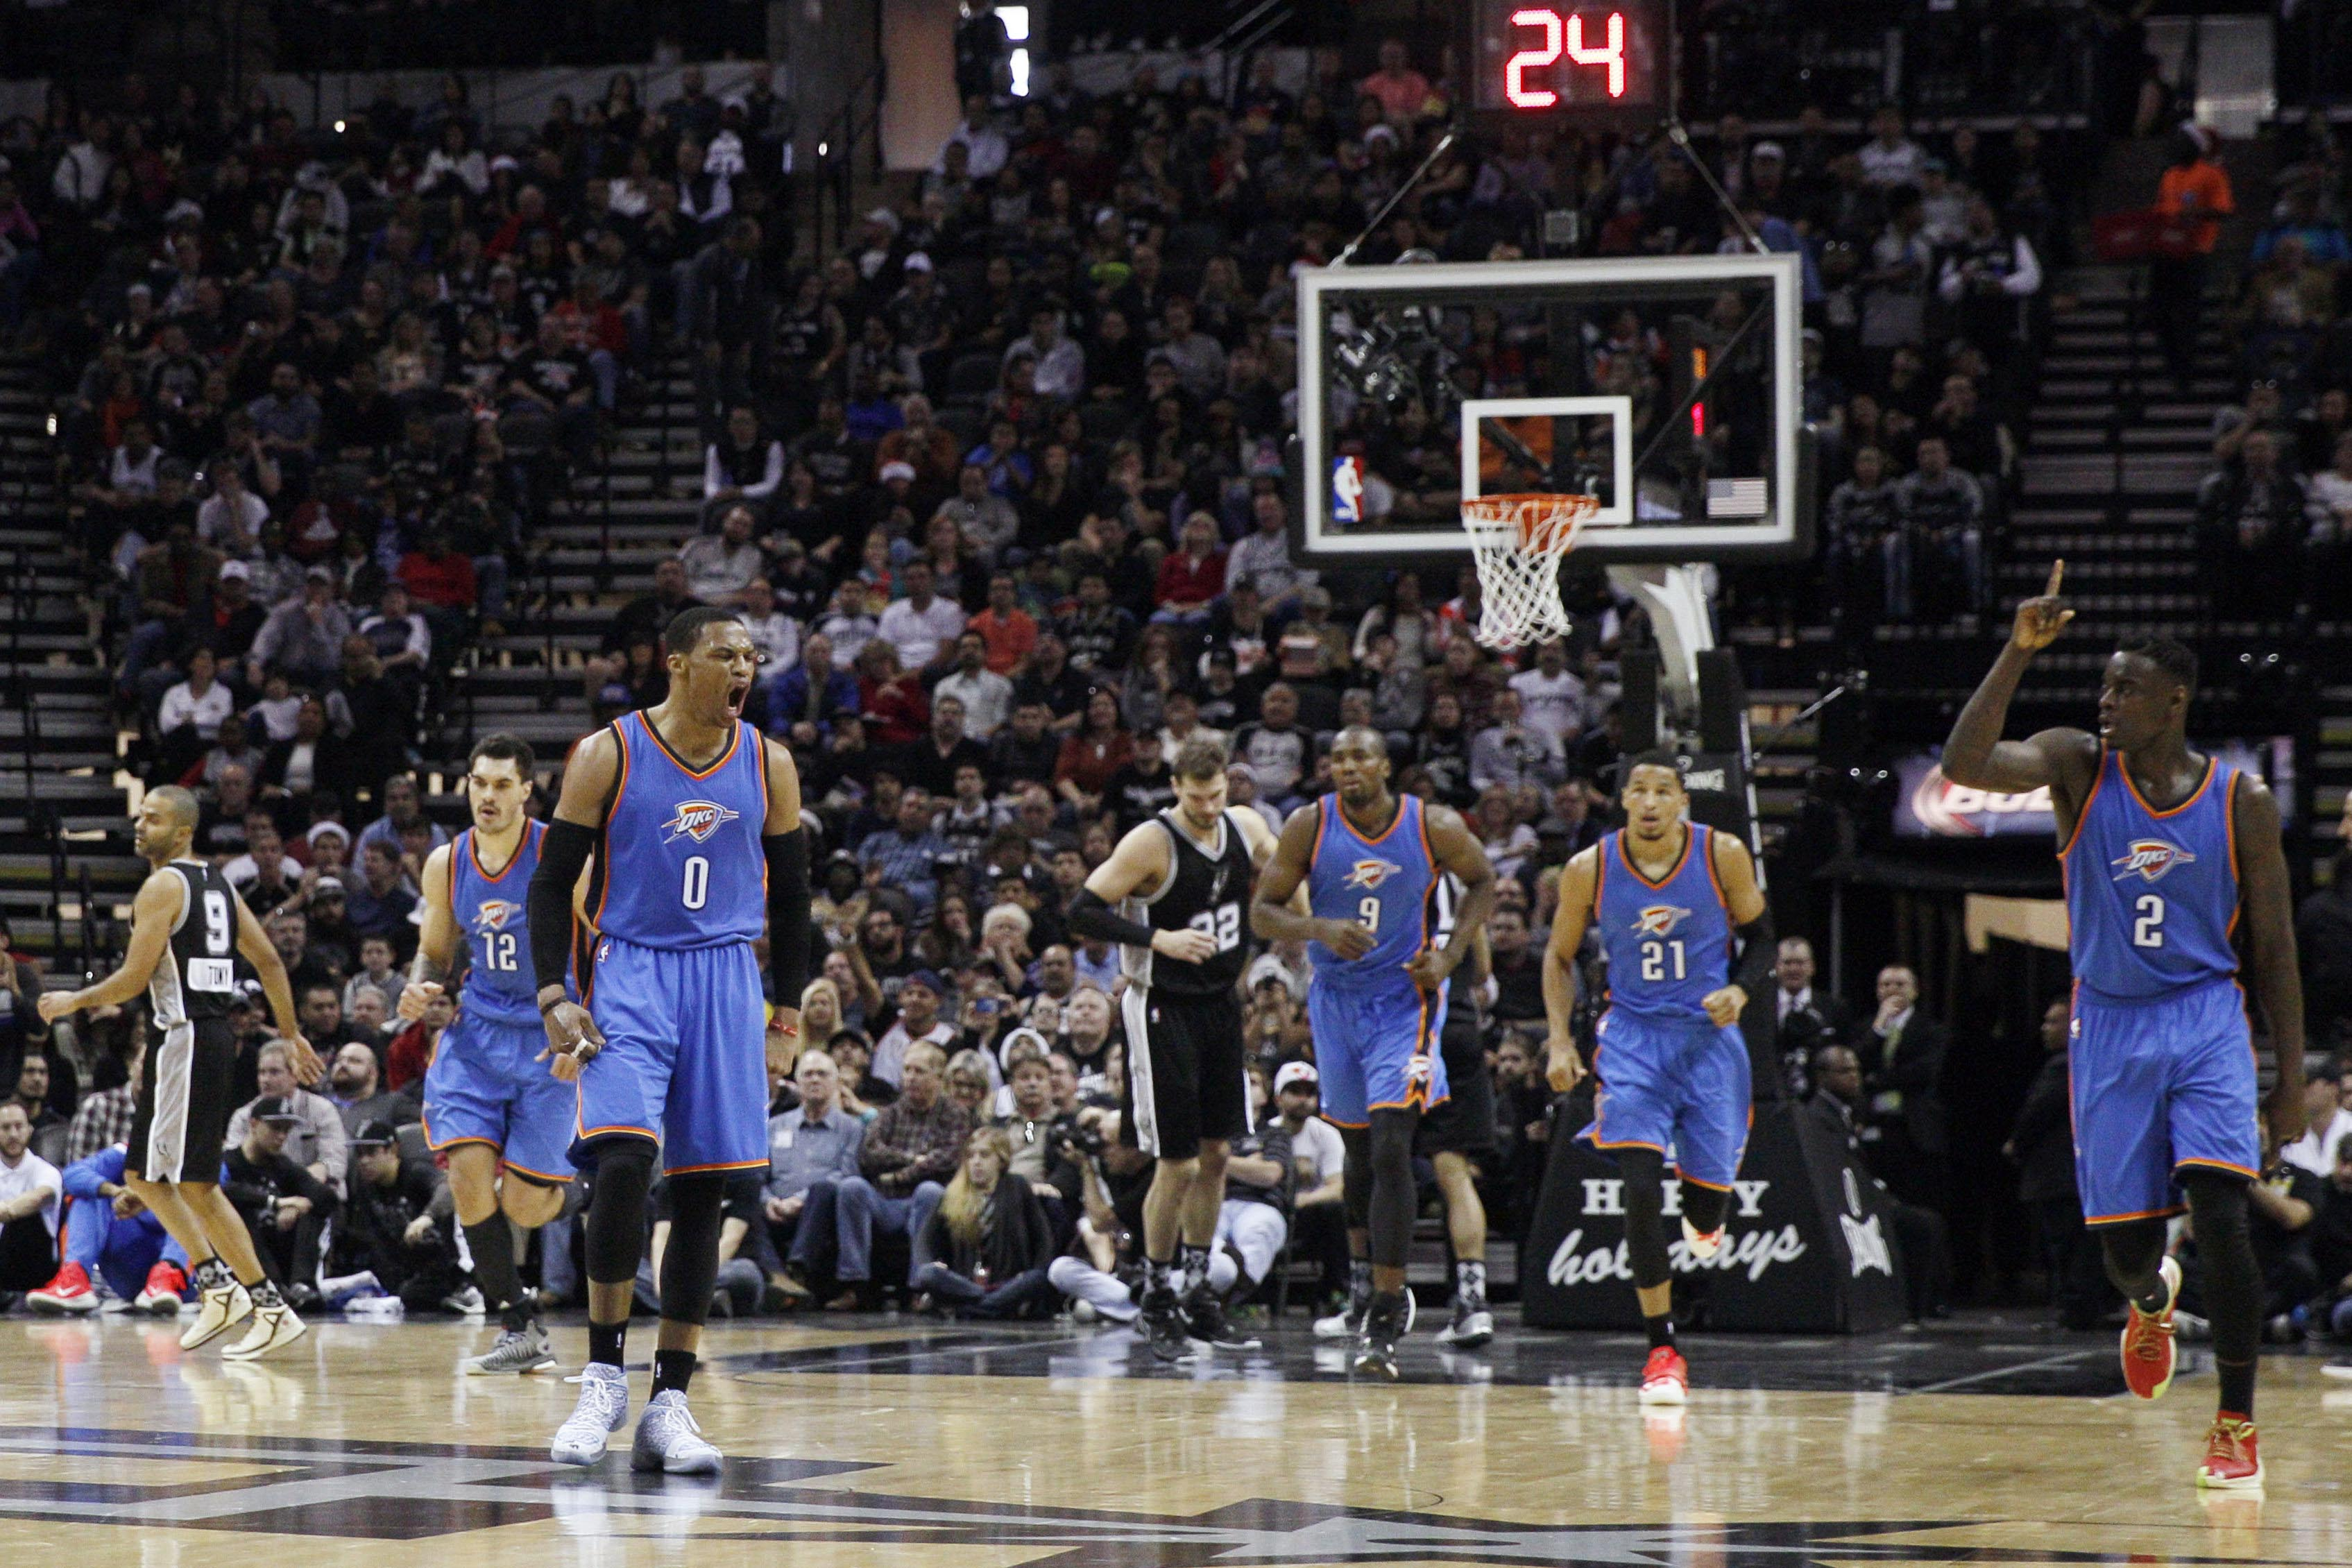 Spurs vs. Thunder final score: Russell Westbrook dominates, the Thunder beat the Spurs, 114-106